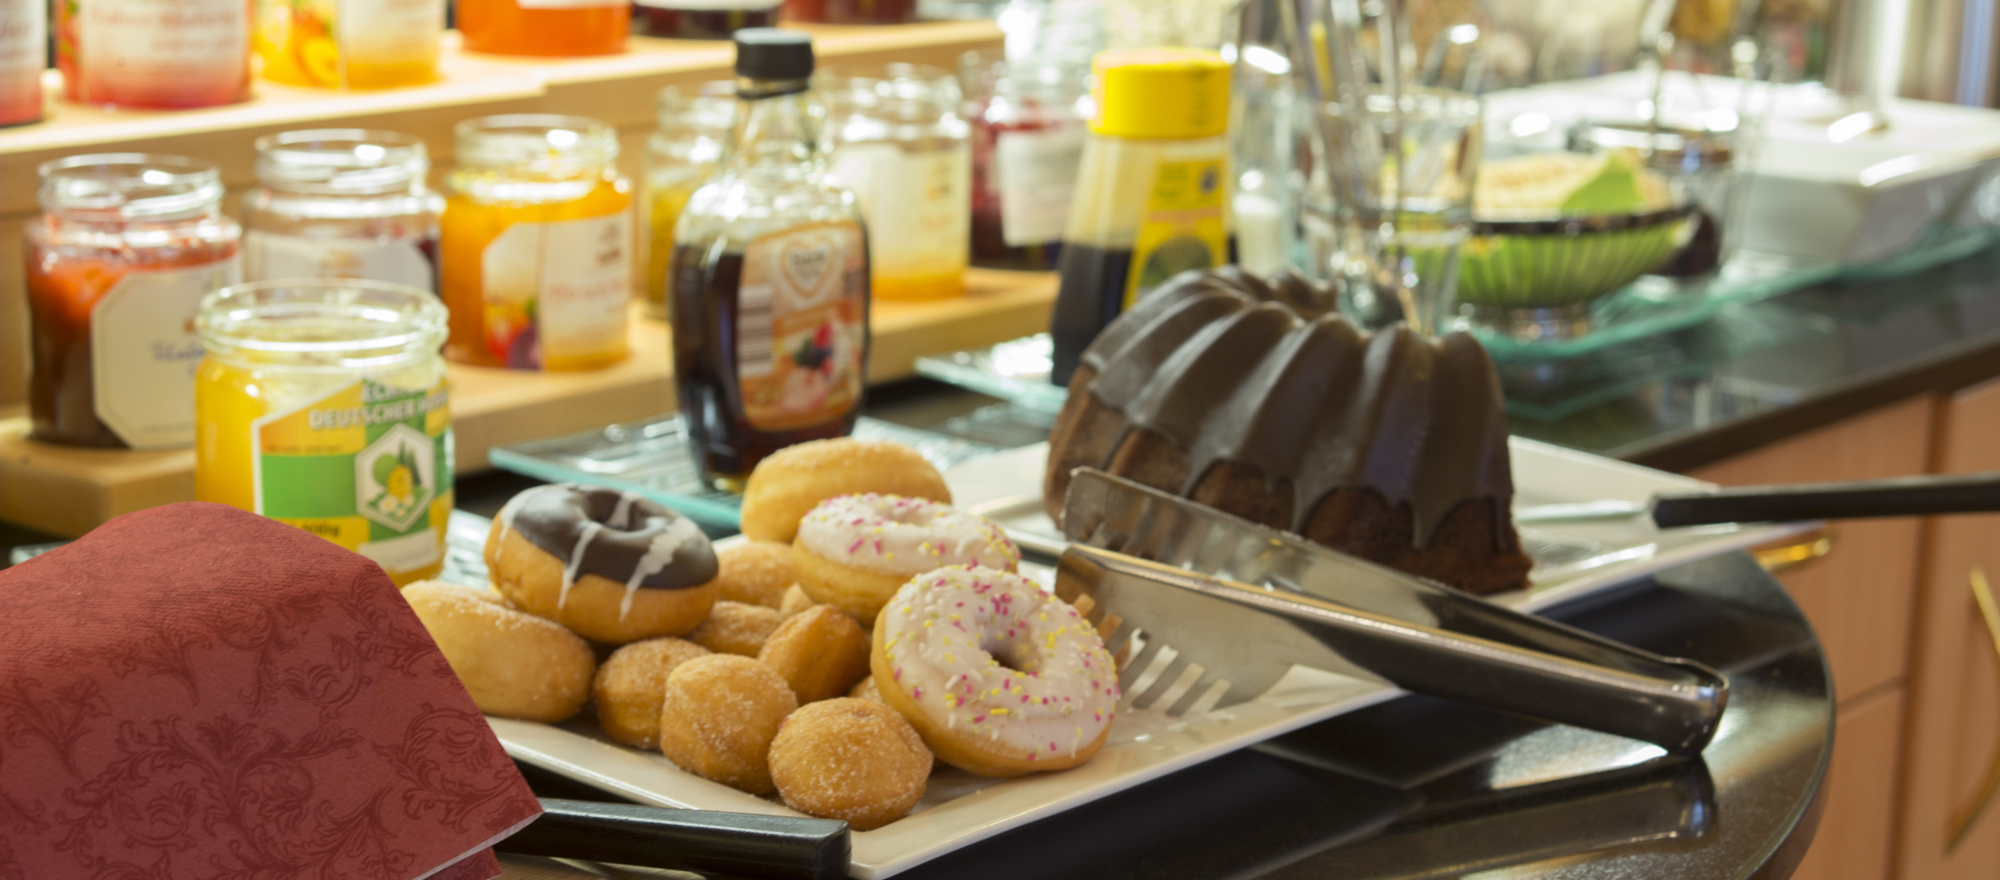 Breakfast buffet with a wide variety in the Ringhotel Posthof garni, 3-star superior hotel in Saarlouis